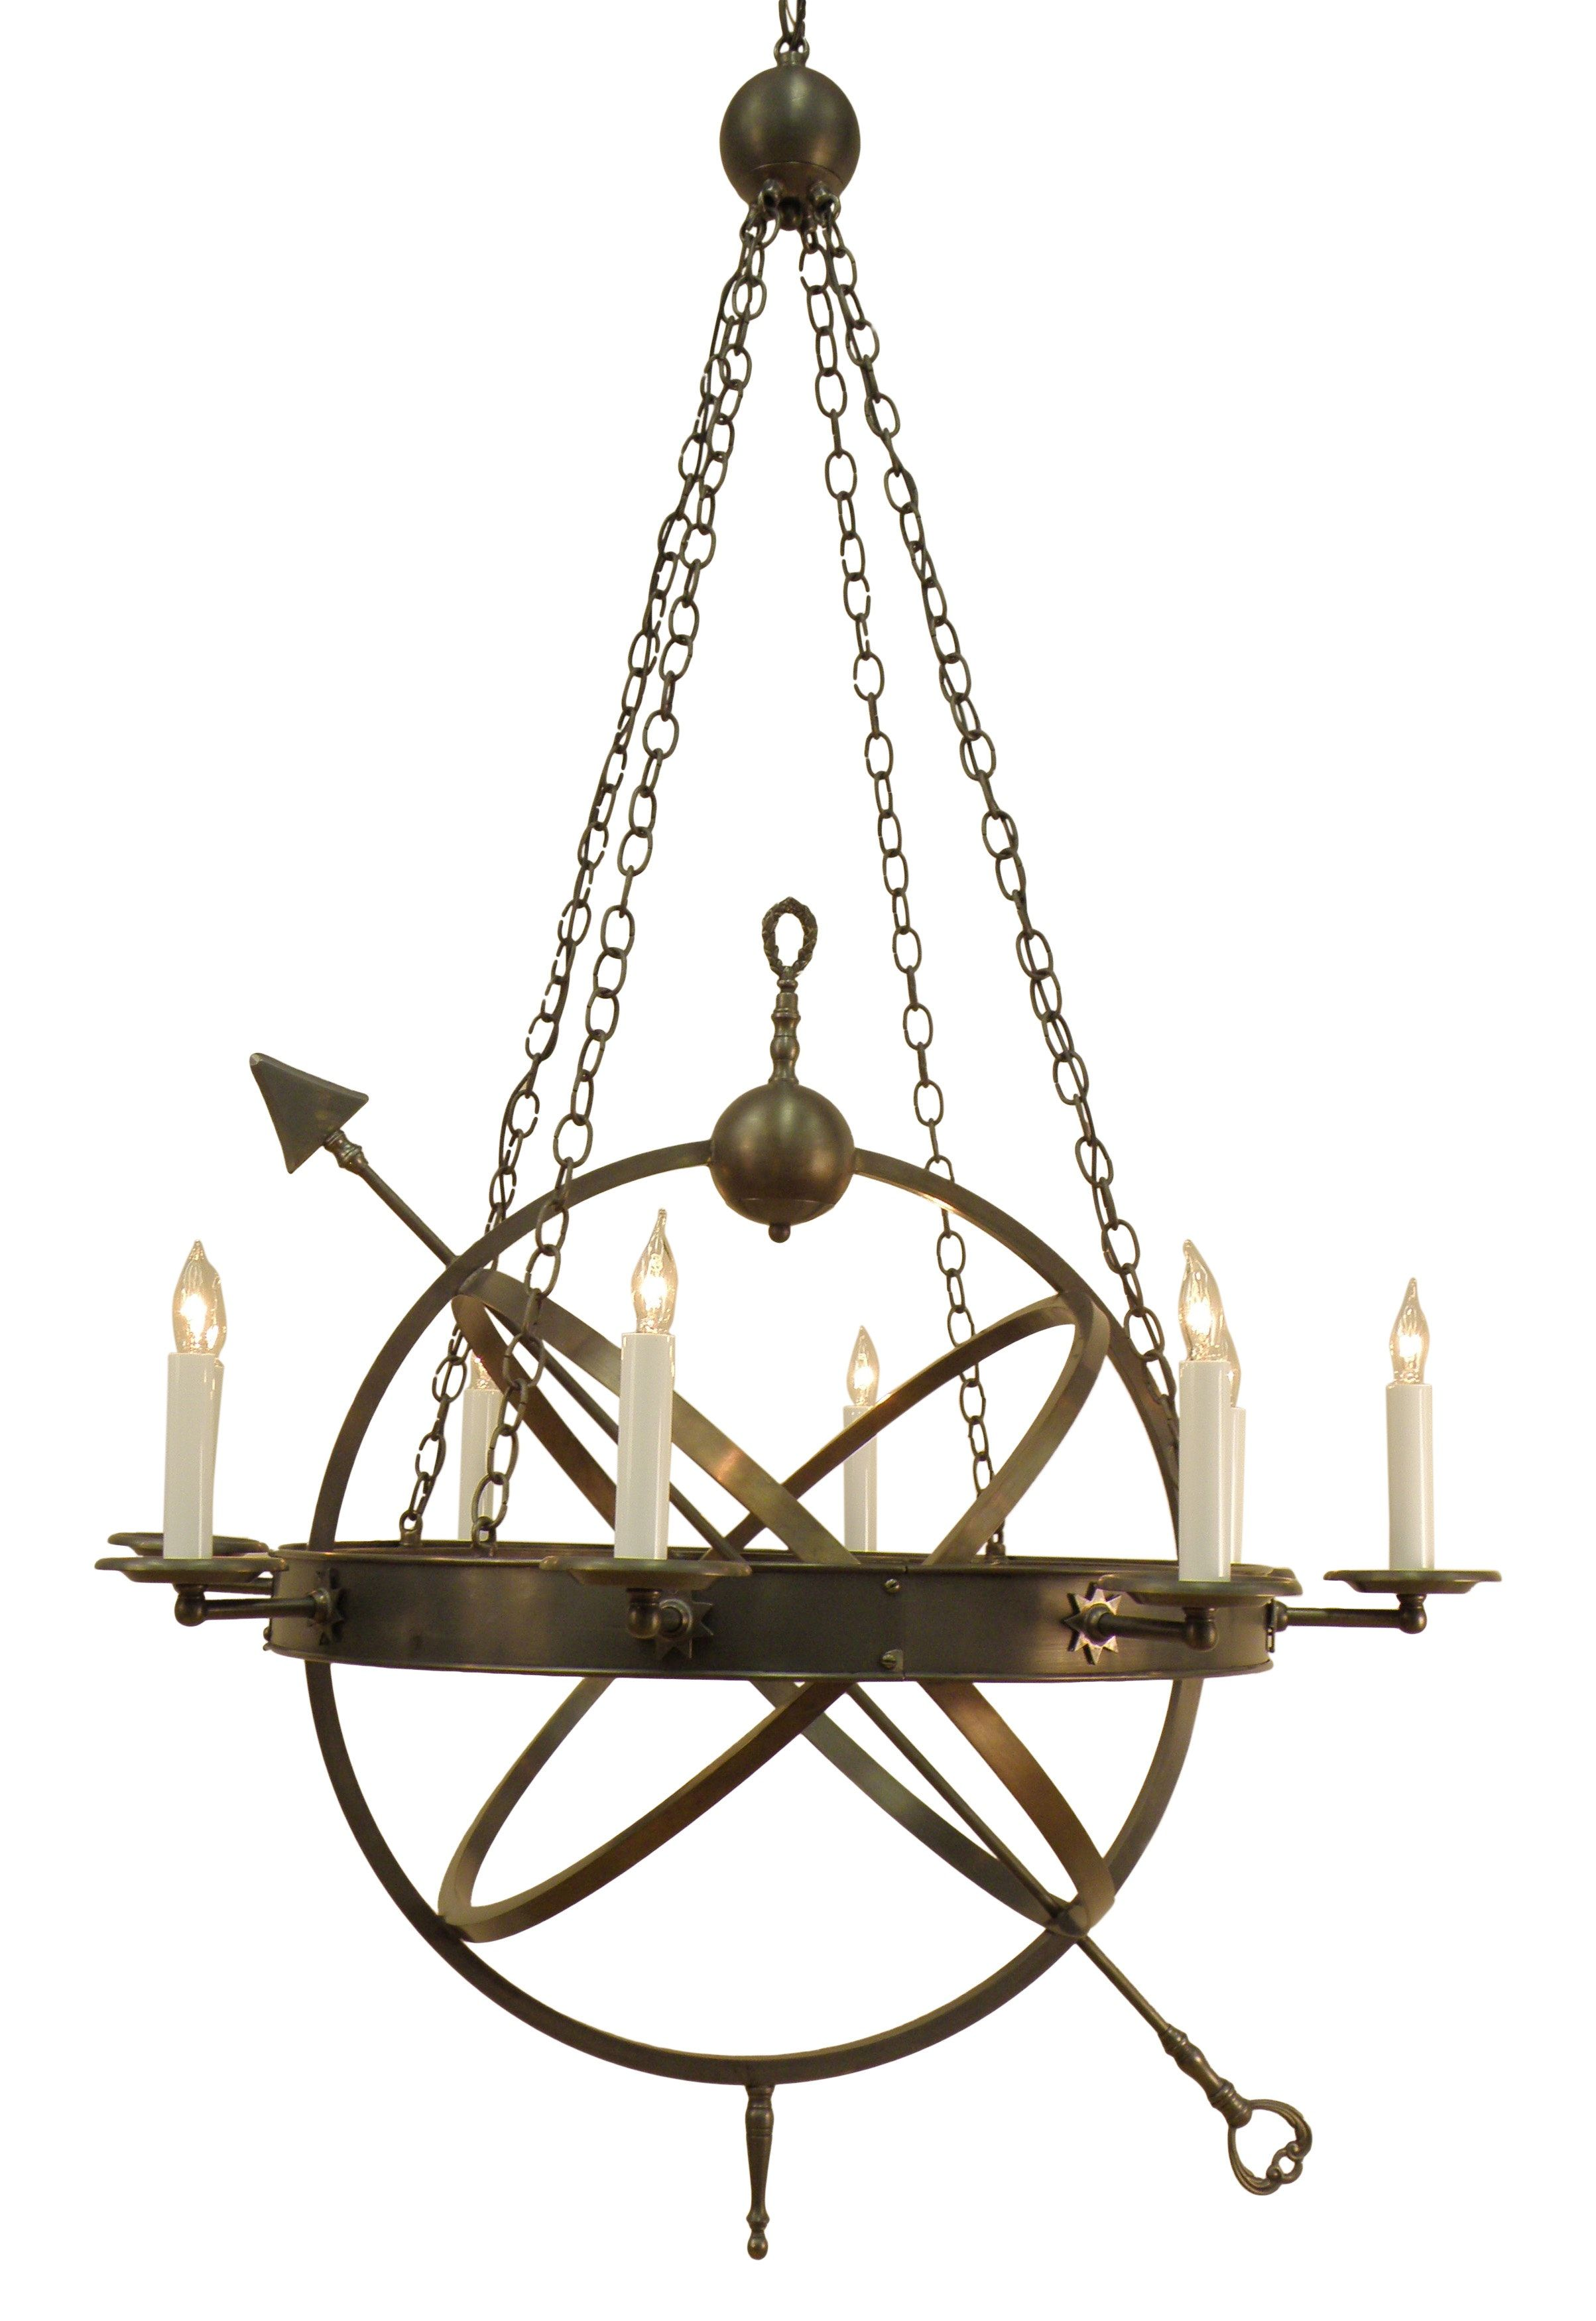 Buy the armillary sphere chandelier by authentic designs made to buy the armillary sphere chandelier by authentic designs made to order designer chandeliers from dering halls collection of contemporary rustic folk aloadofball Image collections